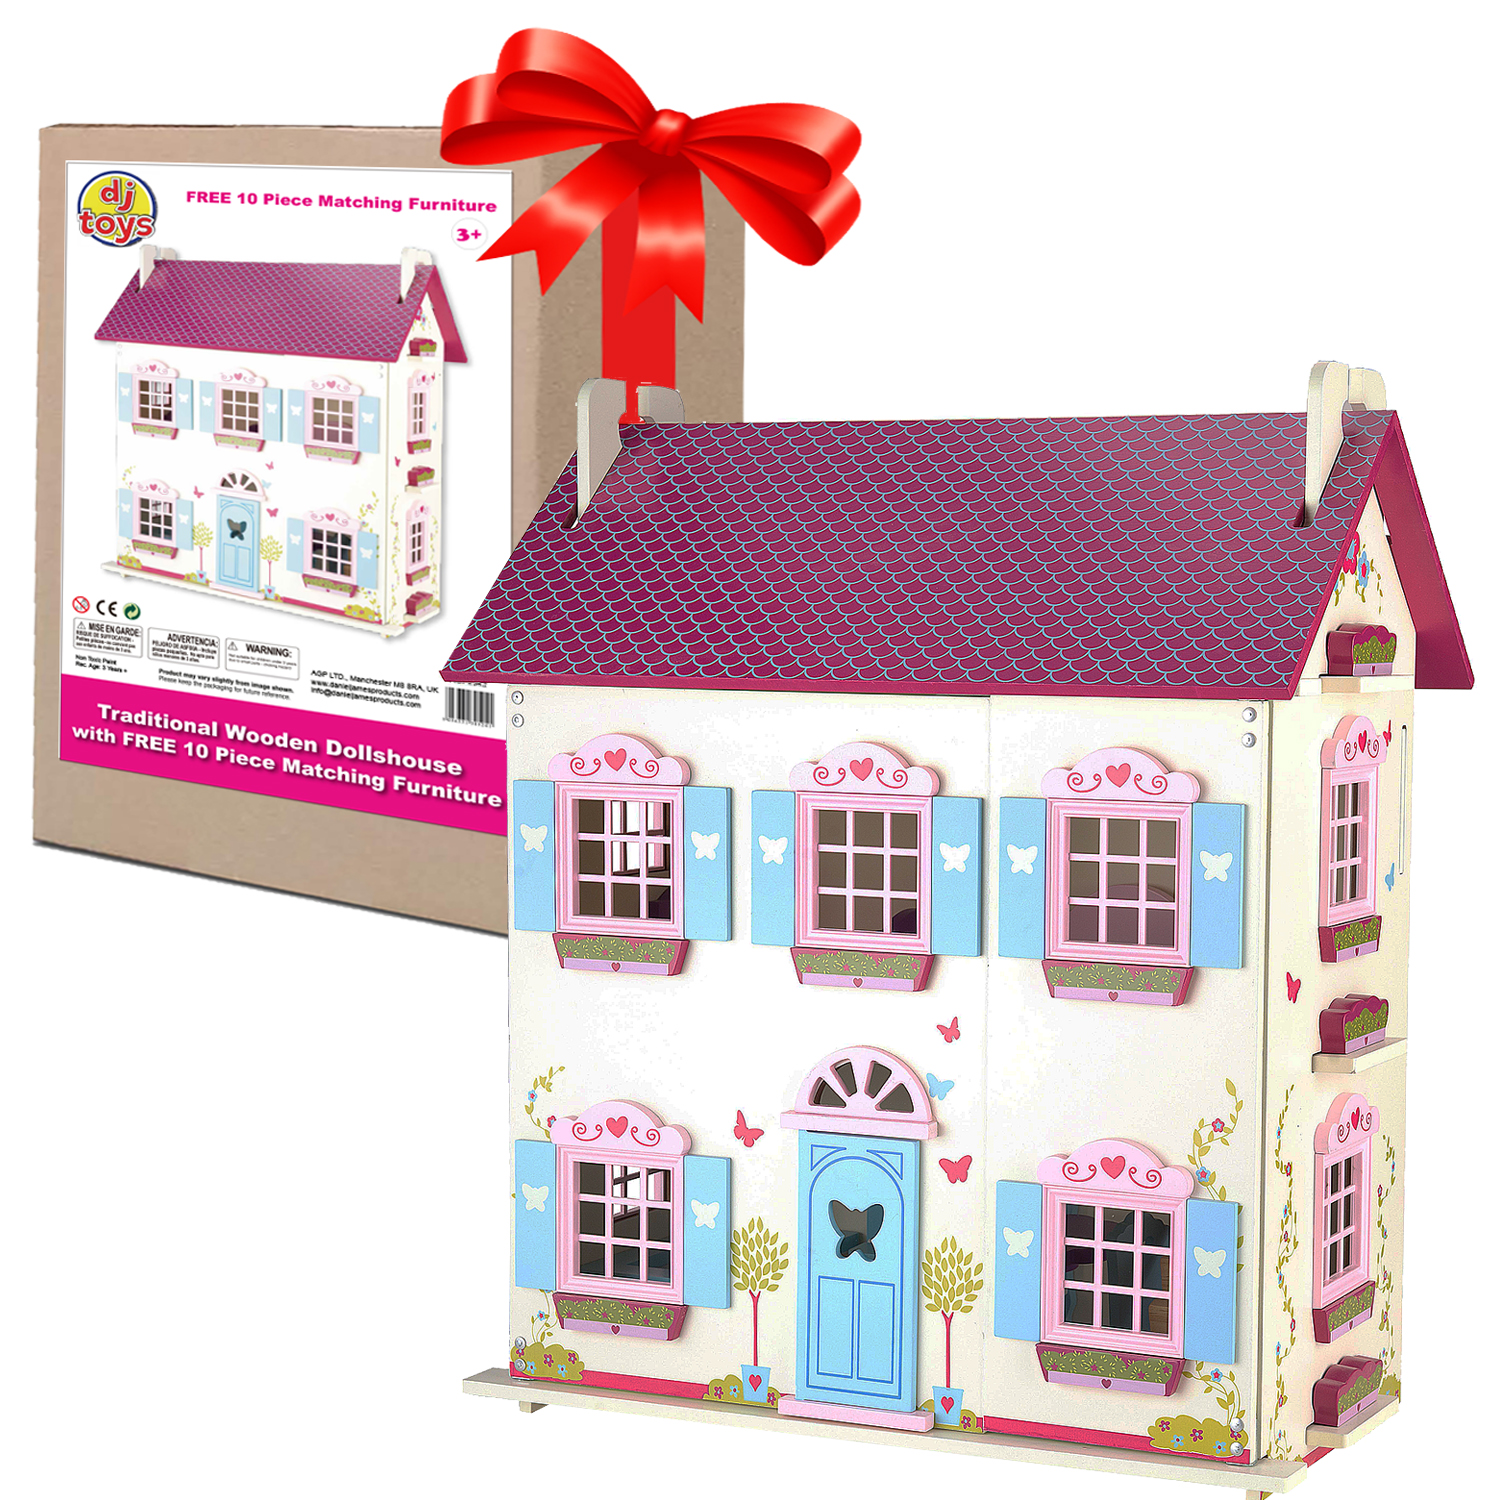 Guaranteed4Less Large Kids Wooden Dolls House Traditional Toy Play Set 10 Piece Wood Furniture